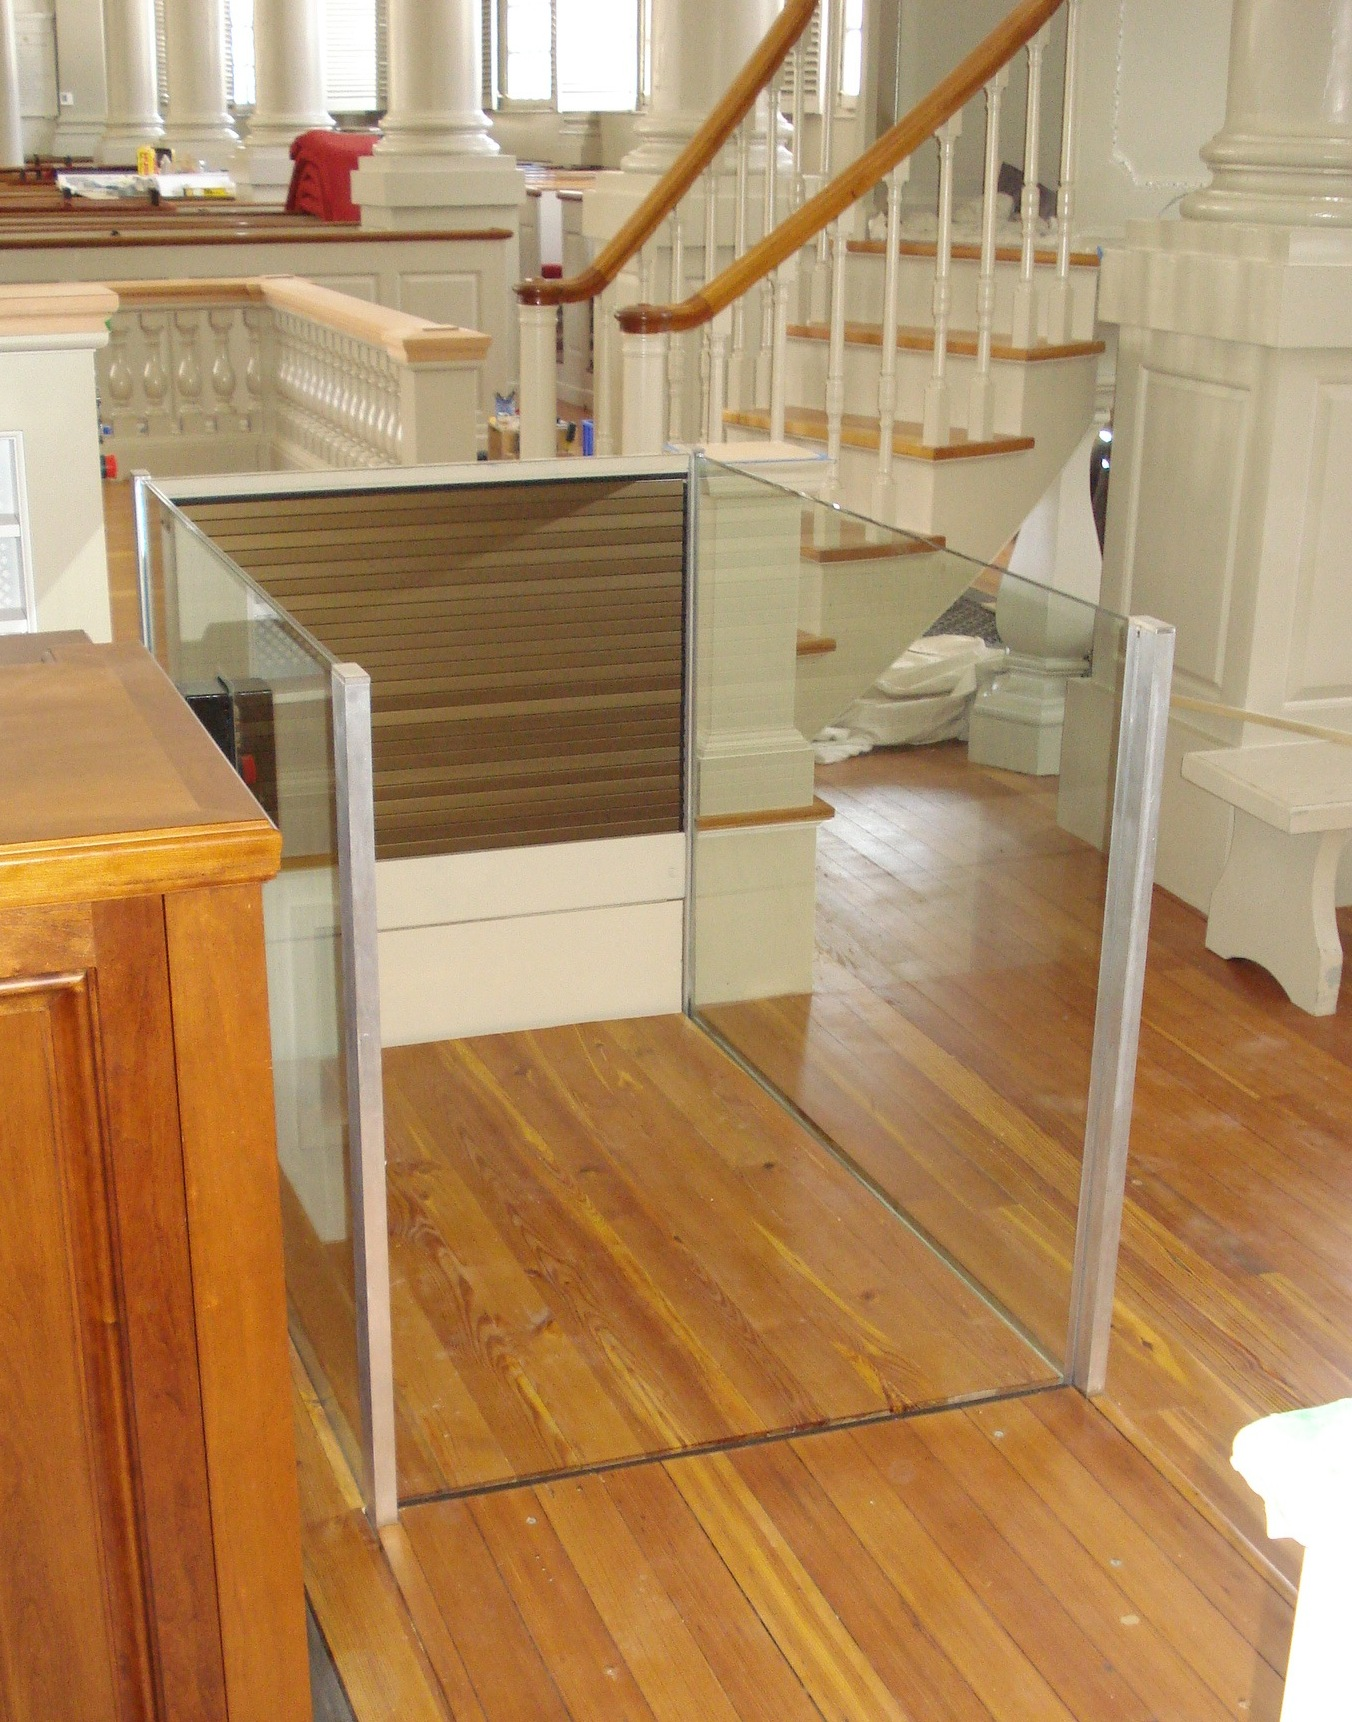 Lift in a church application at the lower level ready to receive a passenger to run the lift to the upper level.  The upper level roll-up barrier is in the up popsition to guard the upper level. Lift utilizes glass stationary sidewalls to blend in with surrounding aesthetics.